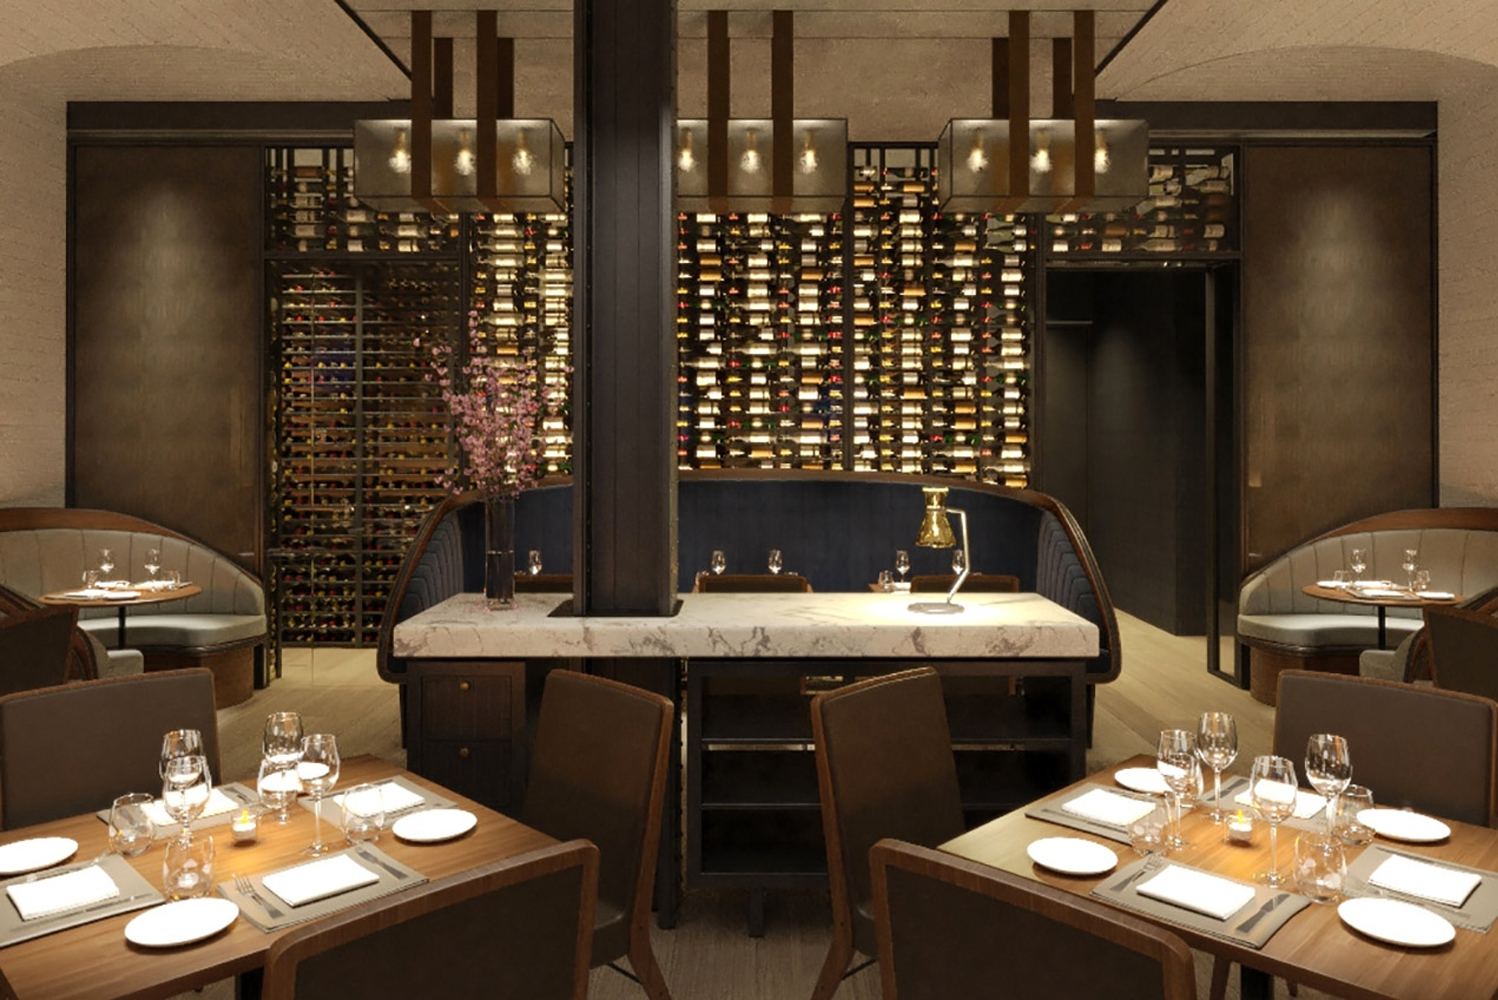 Scarpetta restaurant – which was first opened in New York's Meatpacking District – has a bar and café.